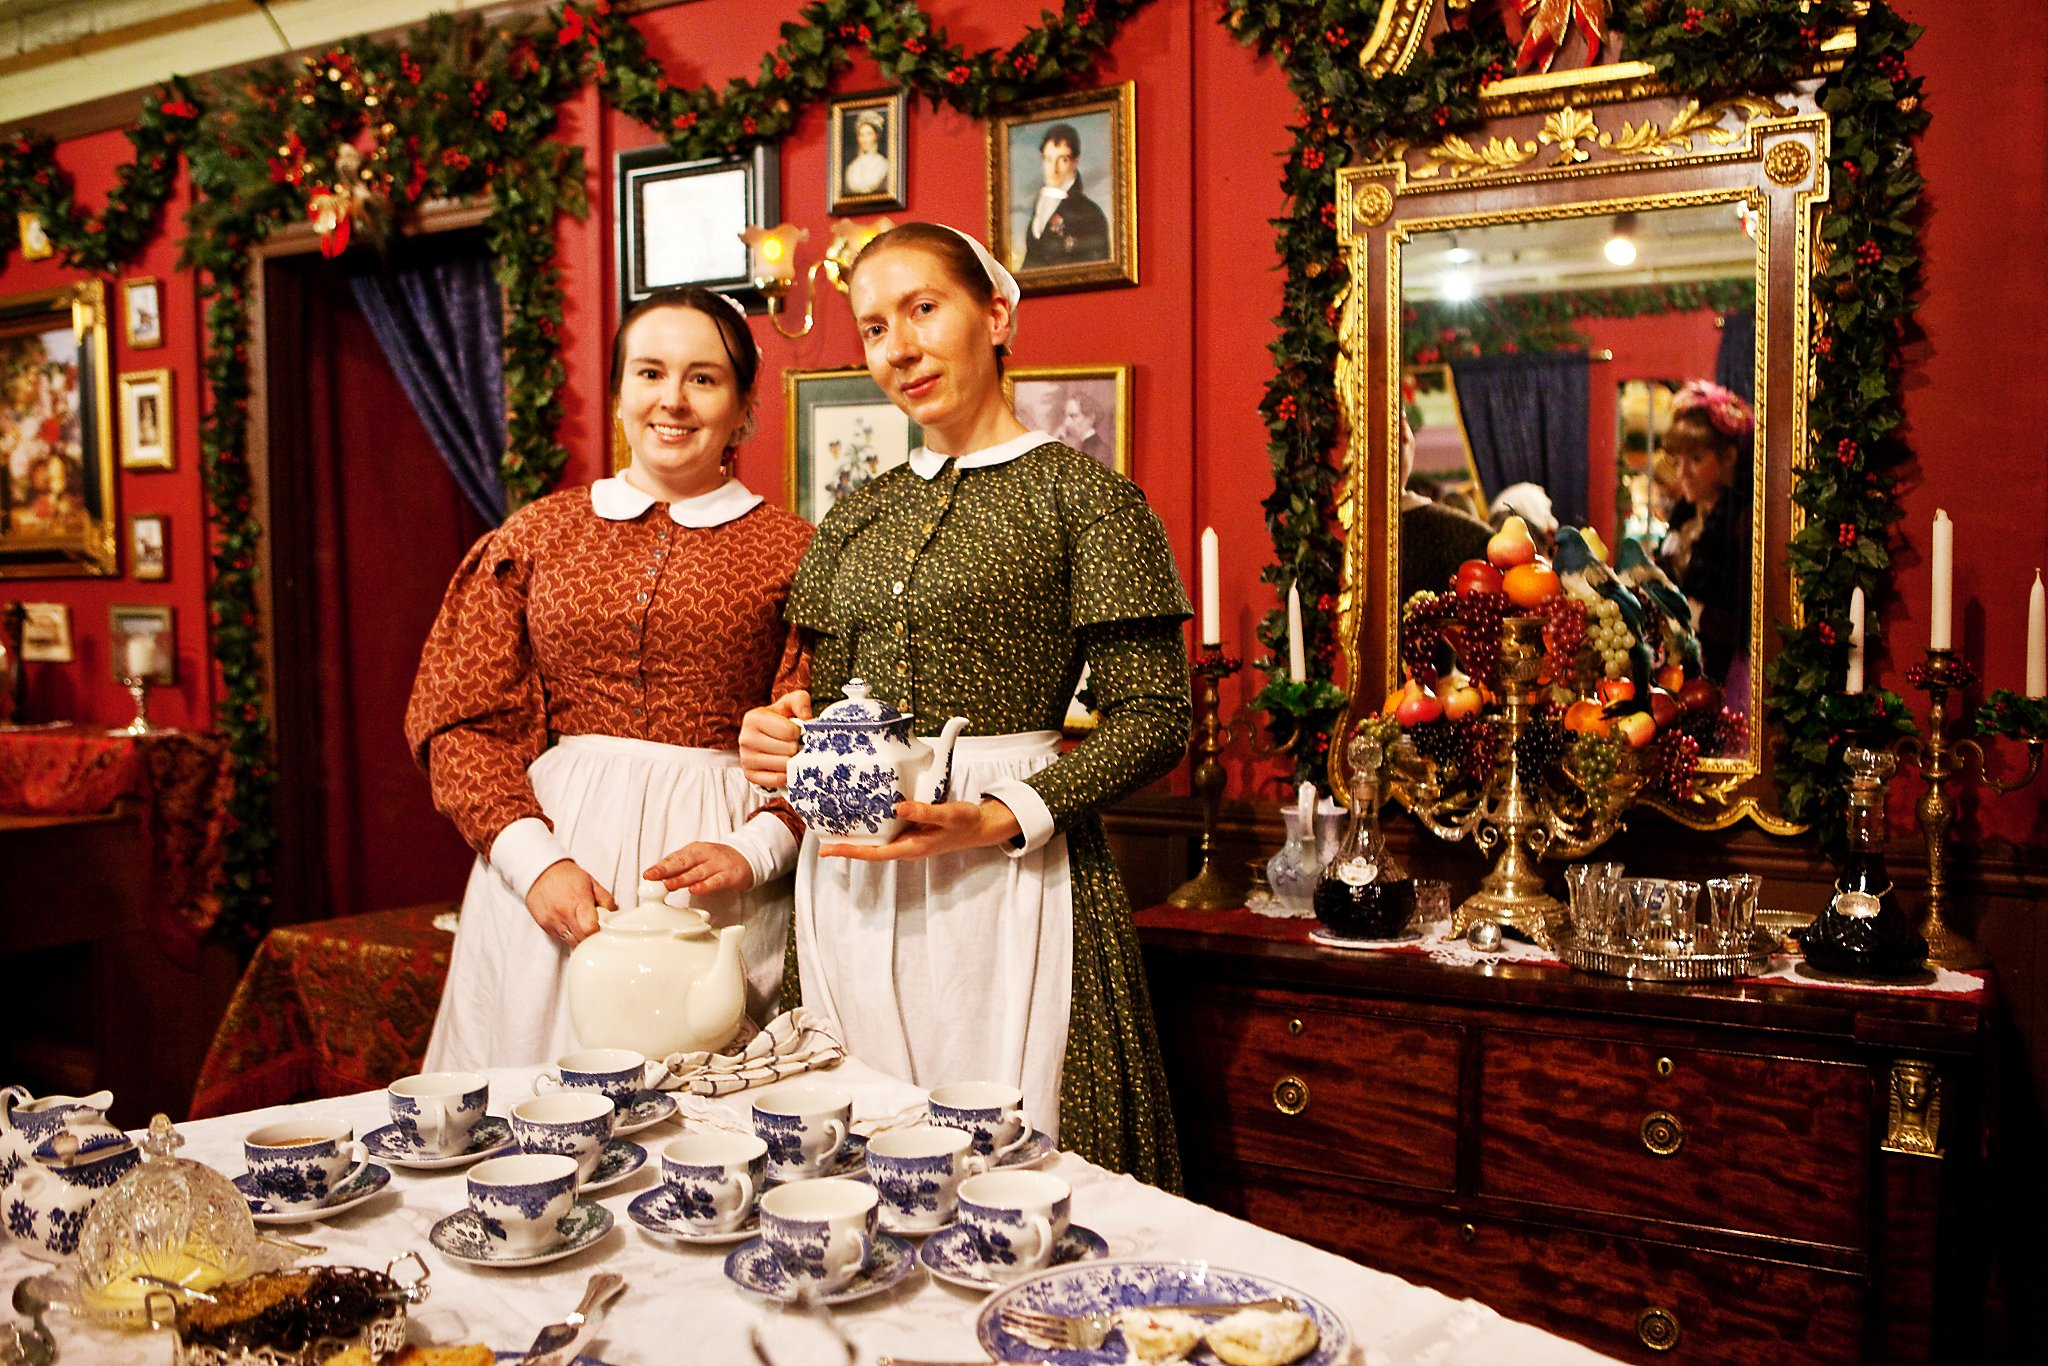 how does dickens recreate the christmas